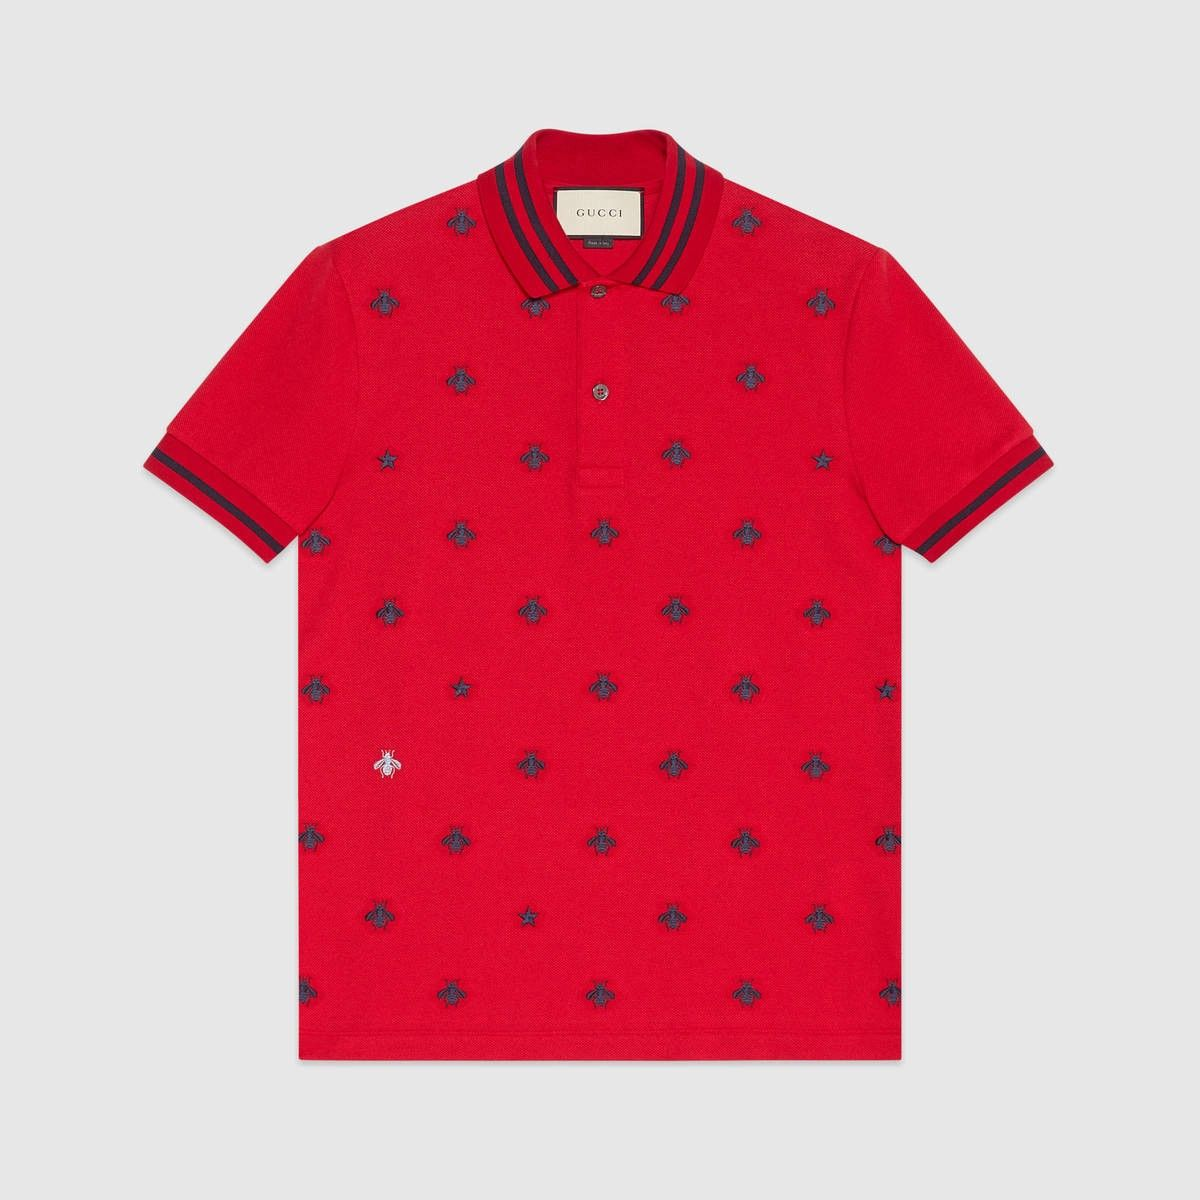 1dc7cda1 GUCCI Cotton polo with bees and stars - red stretch cotton piquet. #gucci  #cloth #